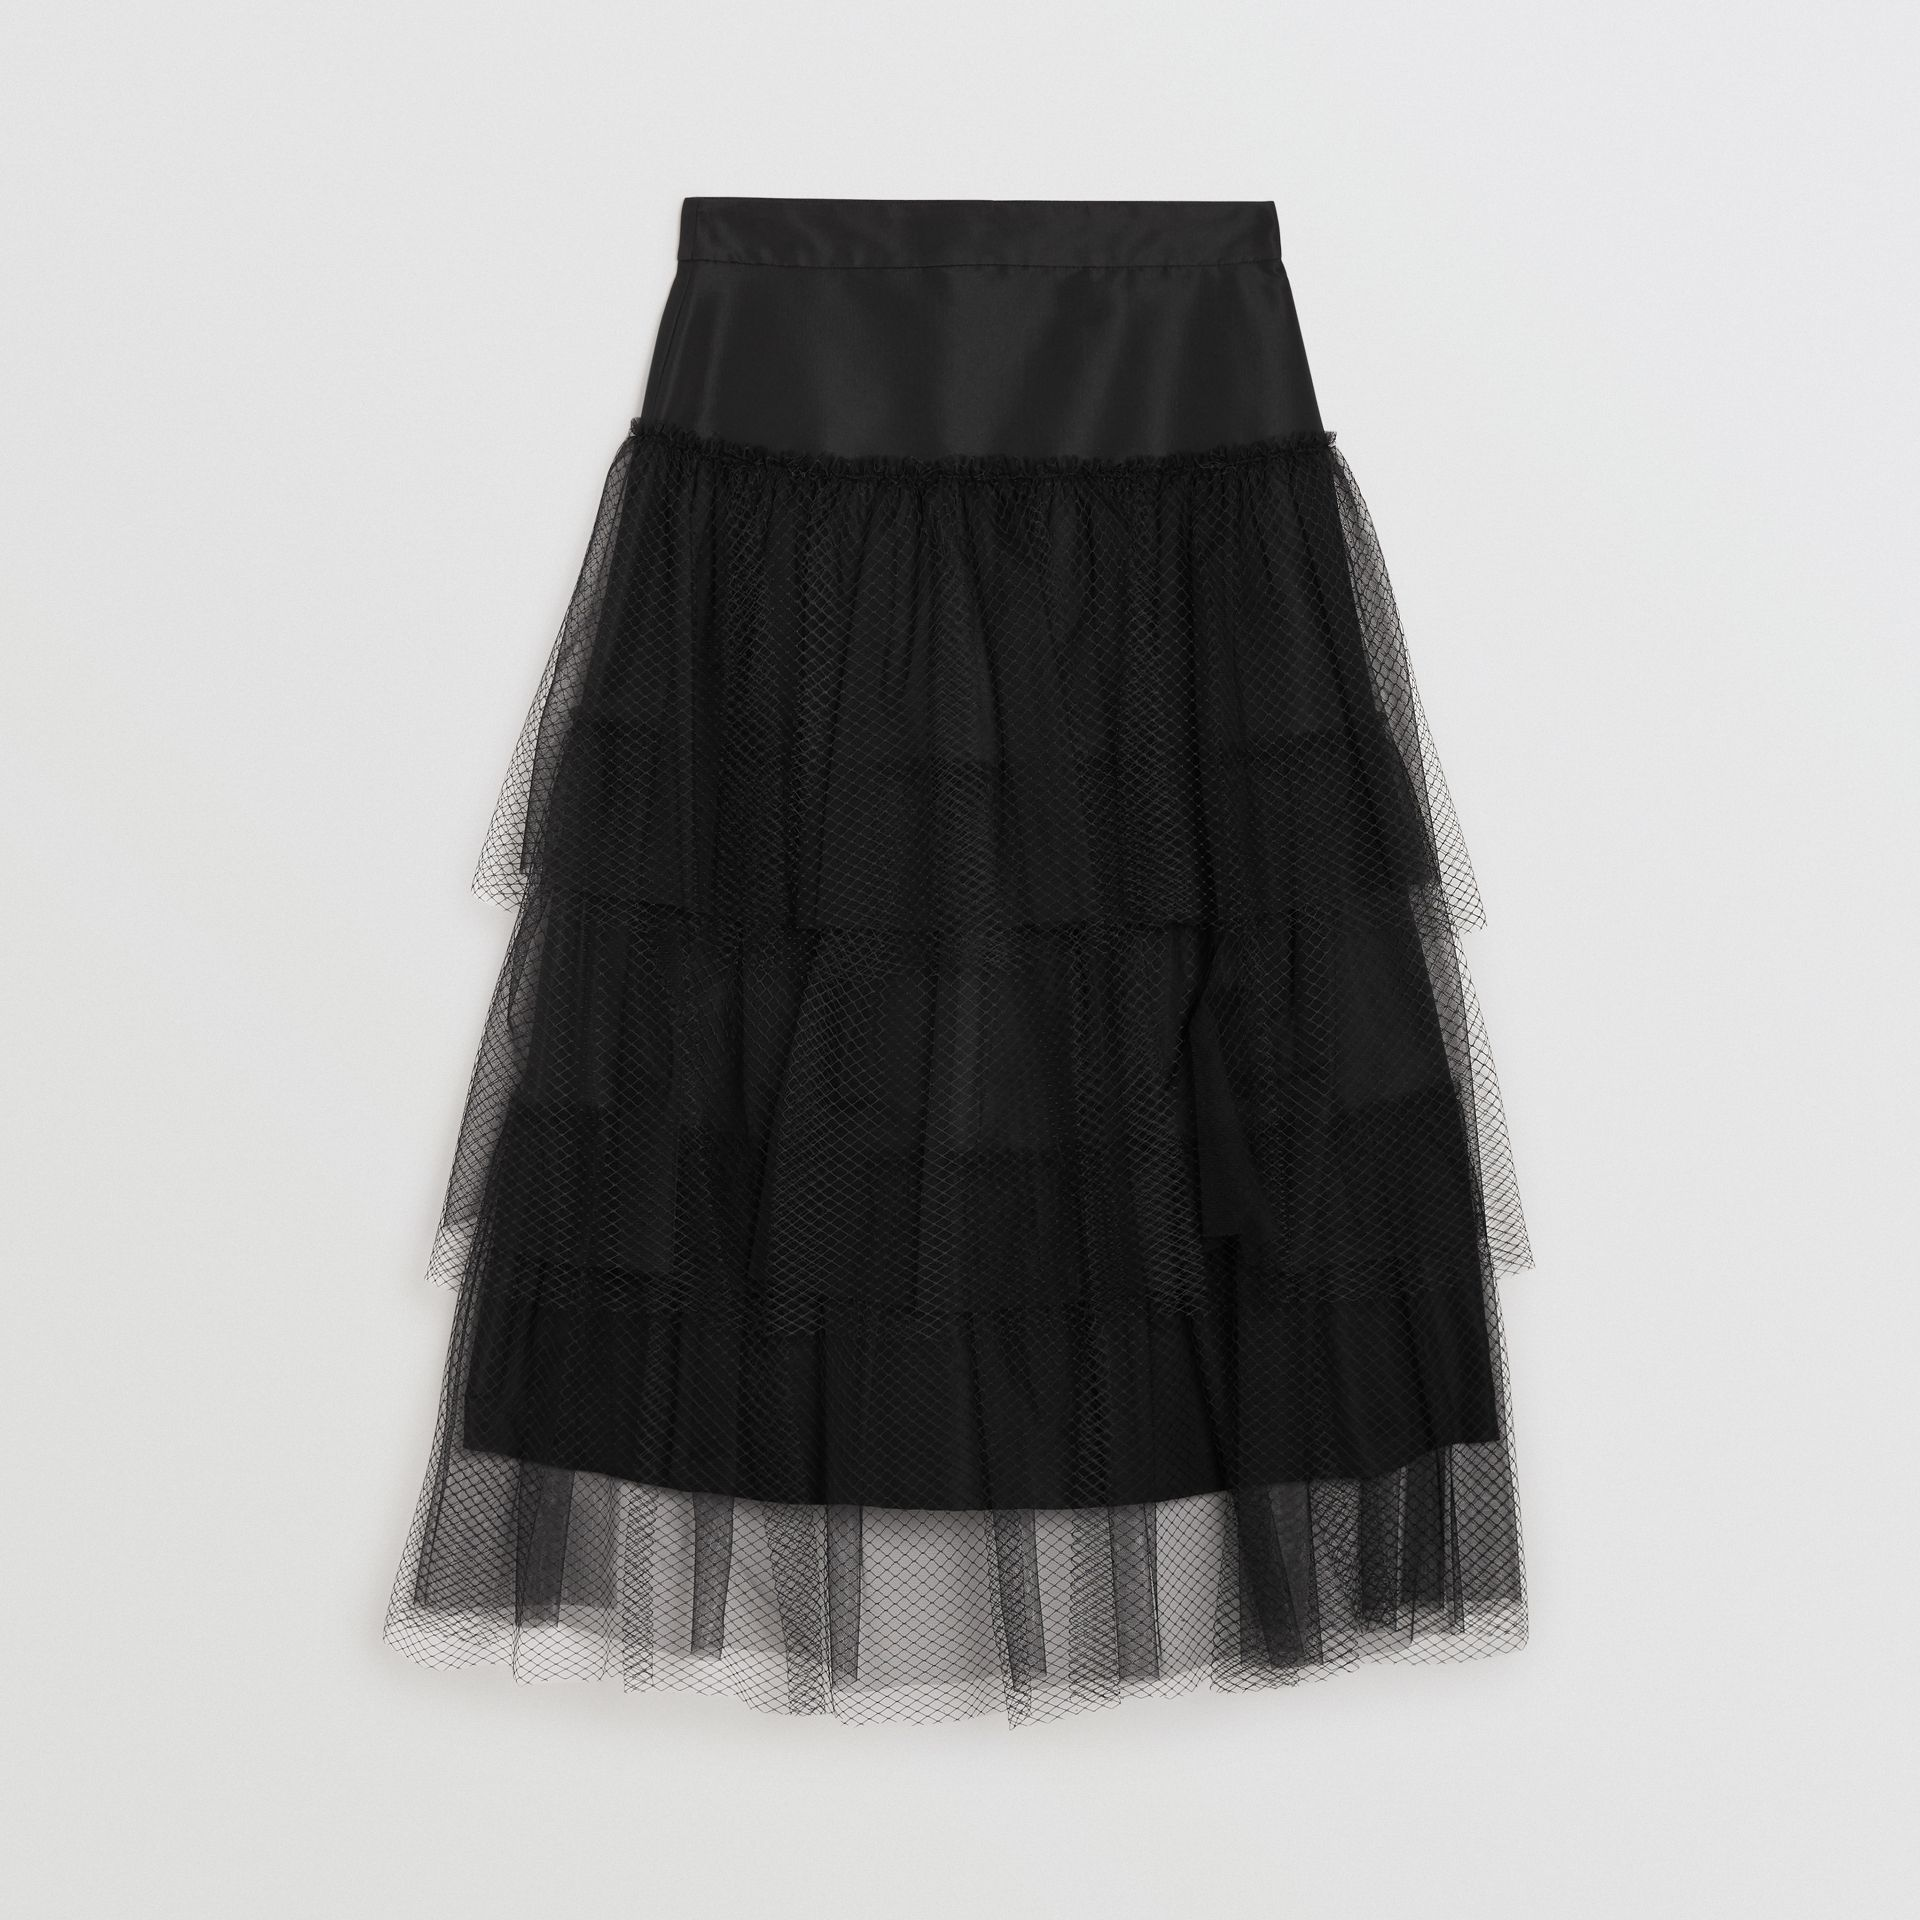 Tiered Tulle A-line Skirt in Black - Women | Burberry - gallery image 3